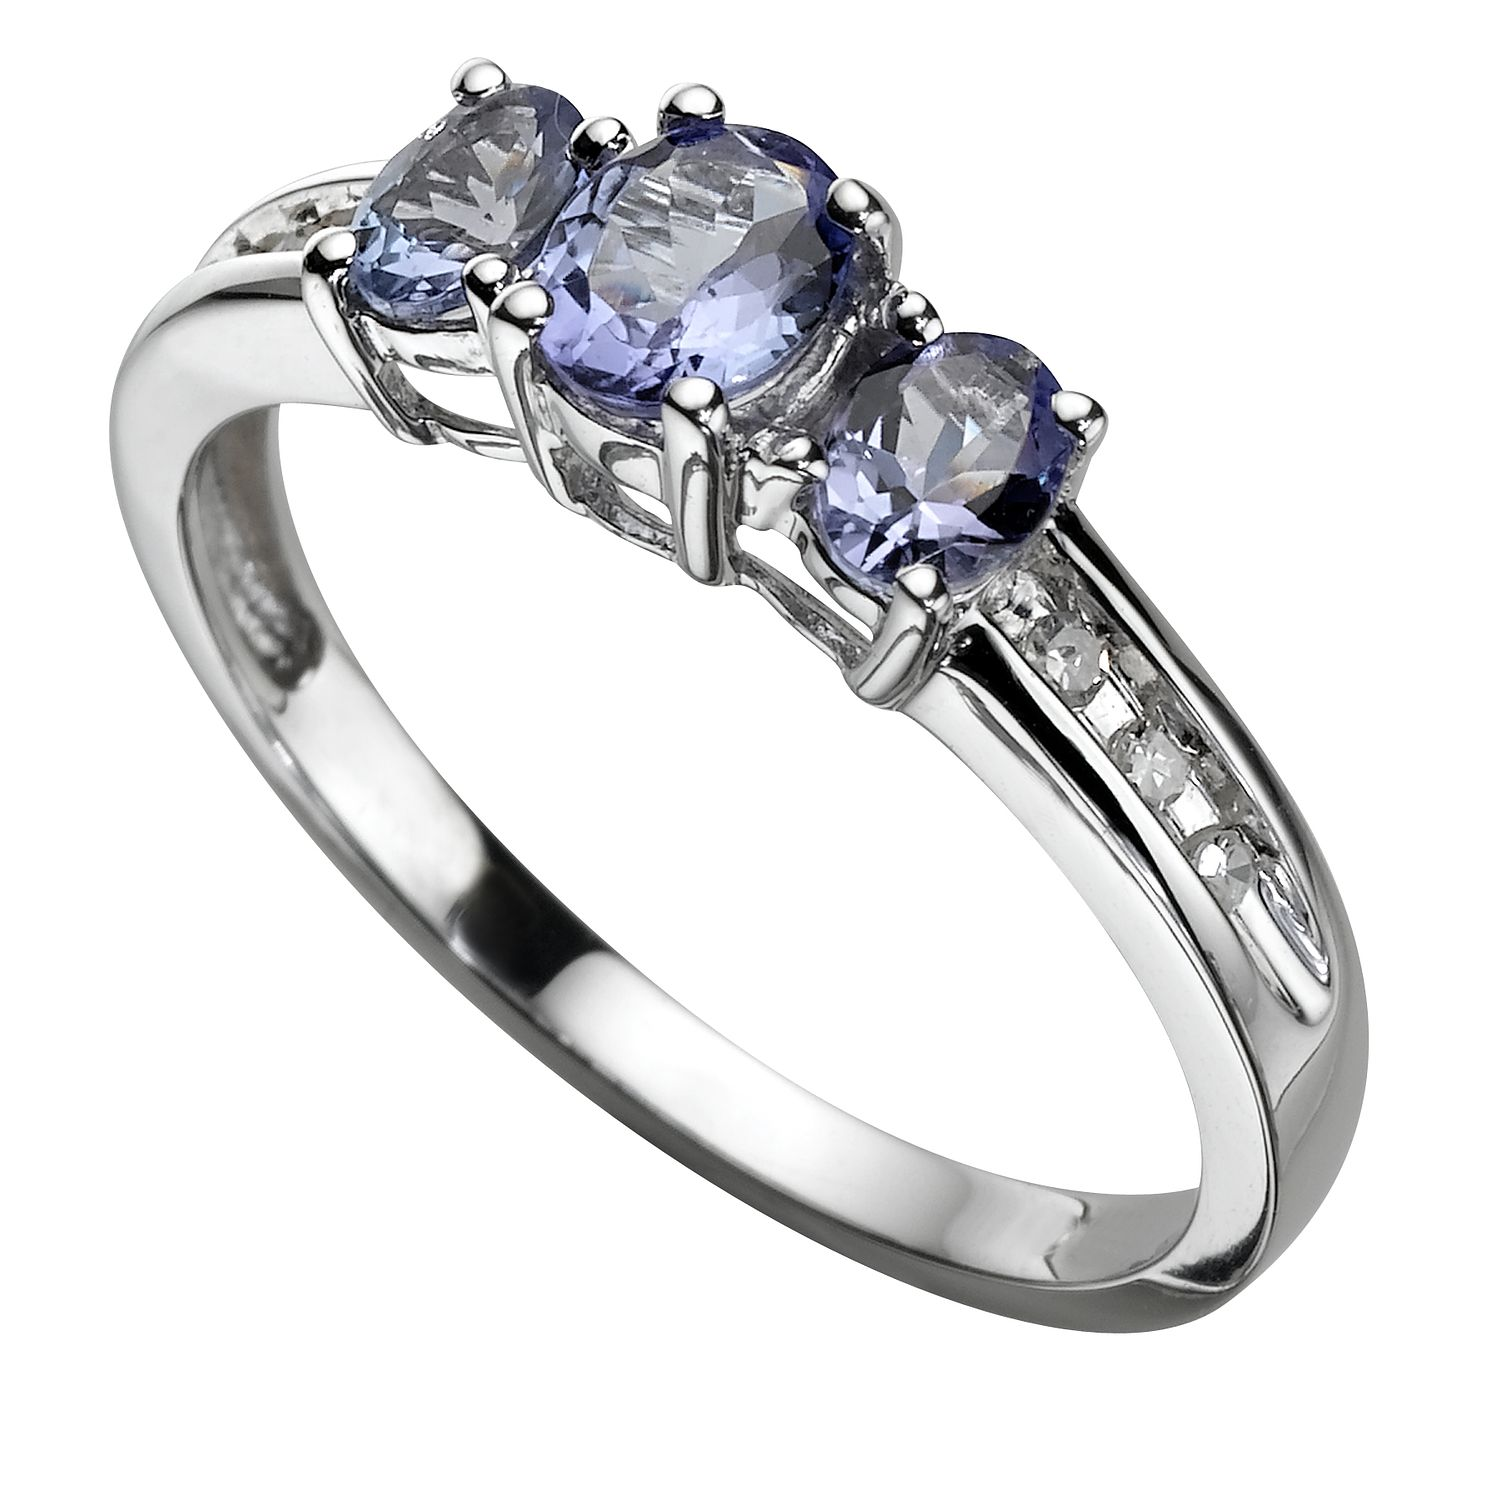 diamond com ctw jewelers bands kay the rings wedding to of new engagement in men patsveg leo addition